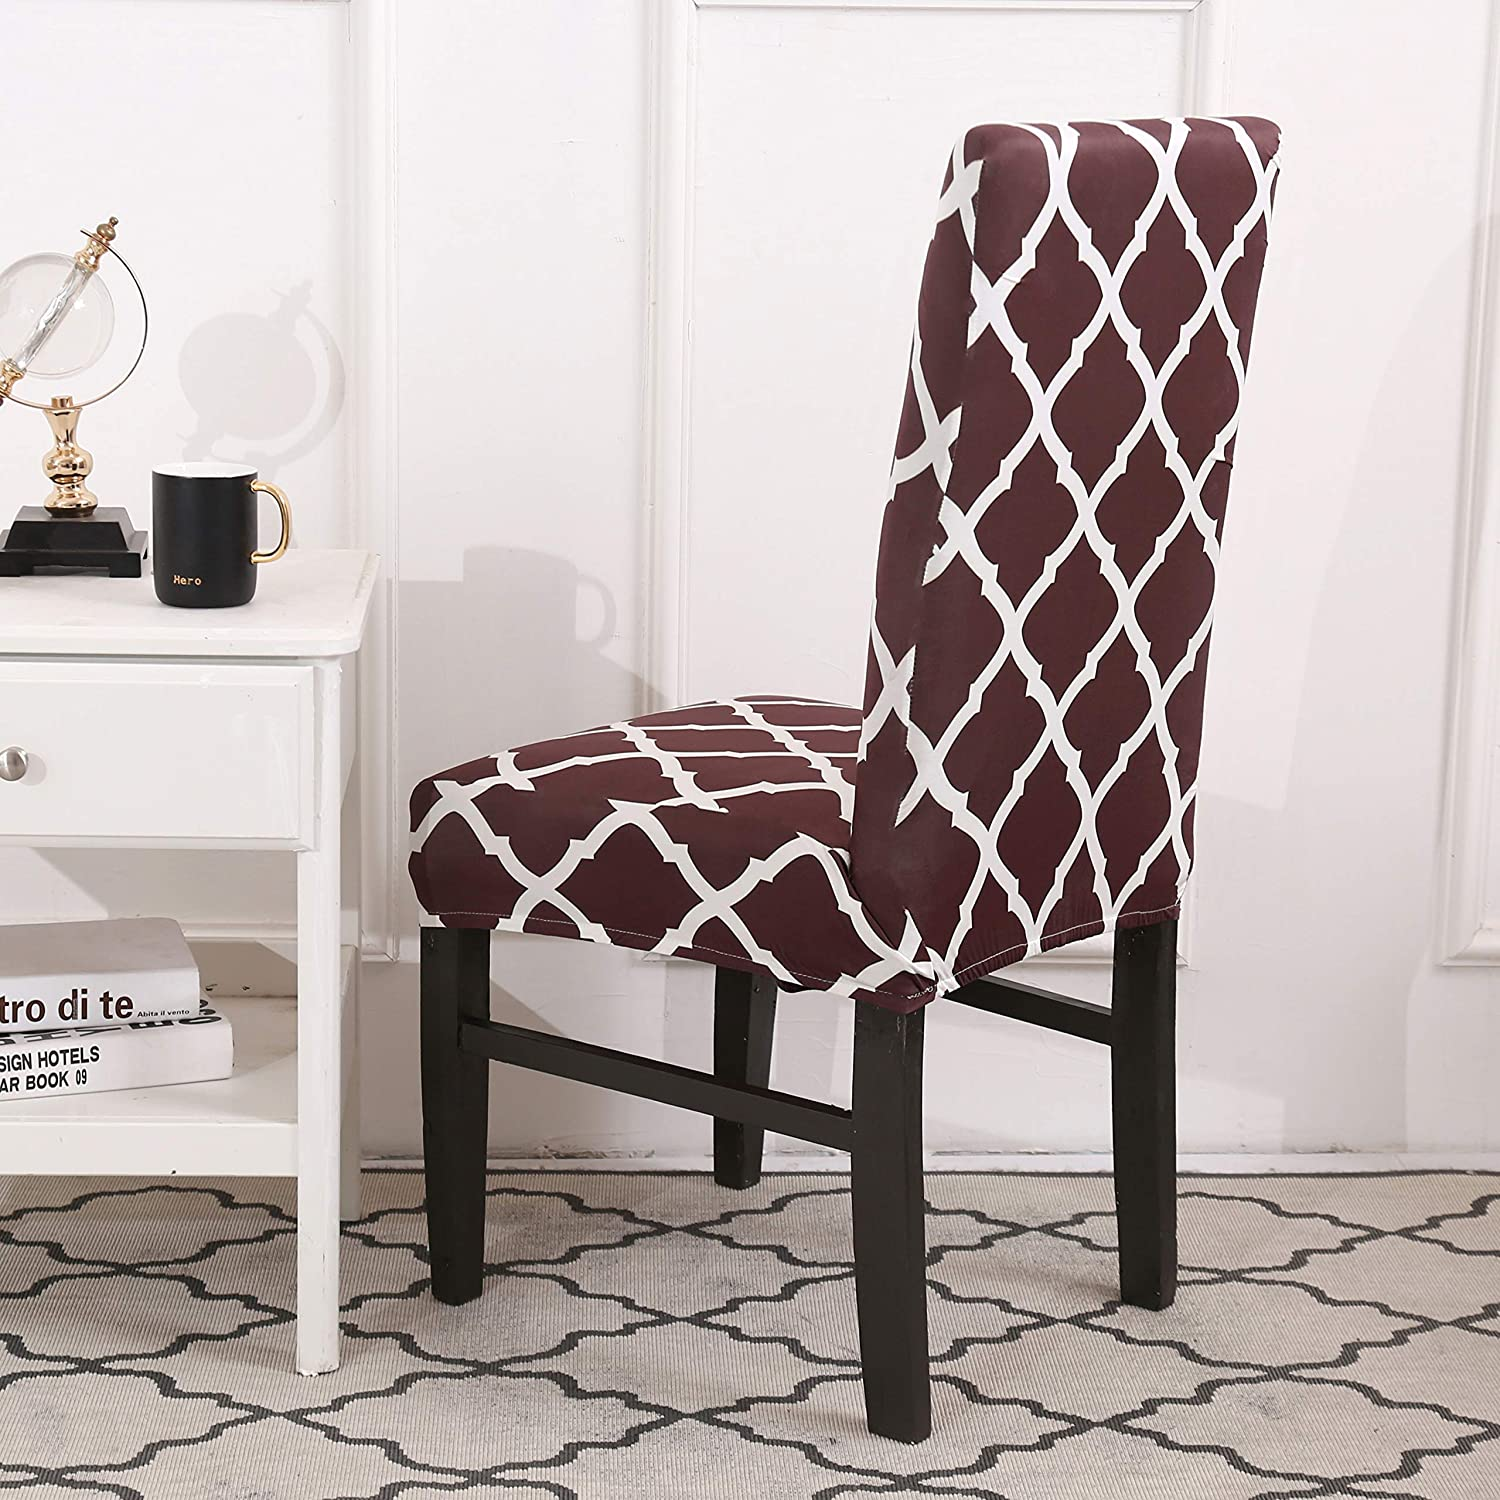 Removable Washable Anti-Dust Dinning Upholstered Chair Seat Cushion Slipcovers Protective Covers with Ties Padgene Stretch Printed Dining Chair Seat Covers